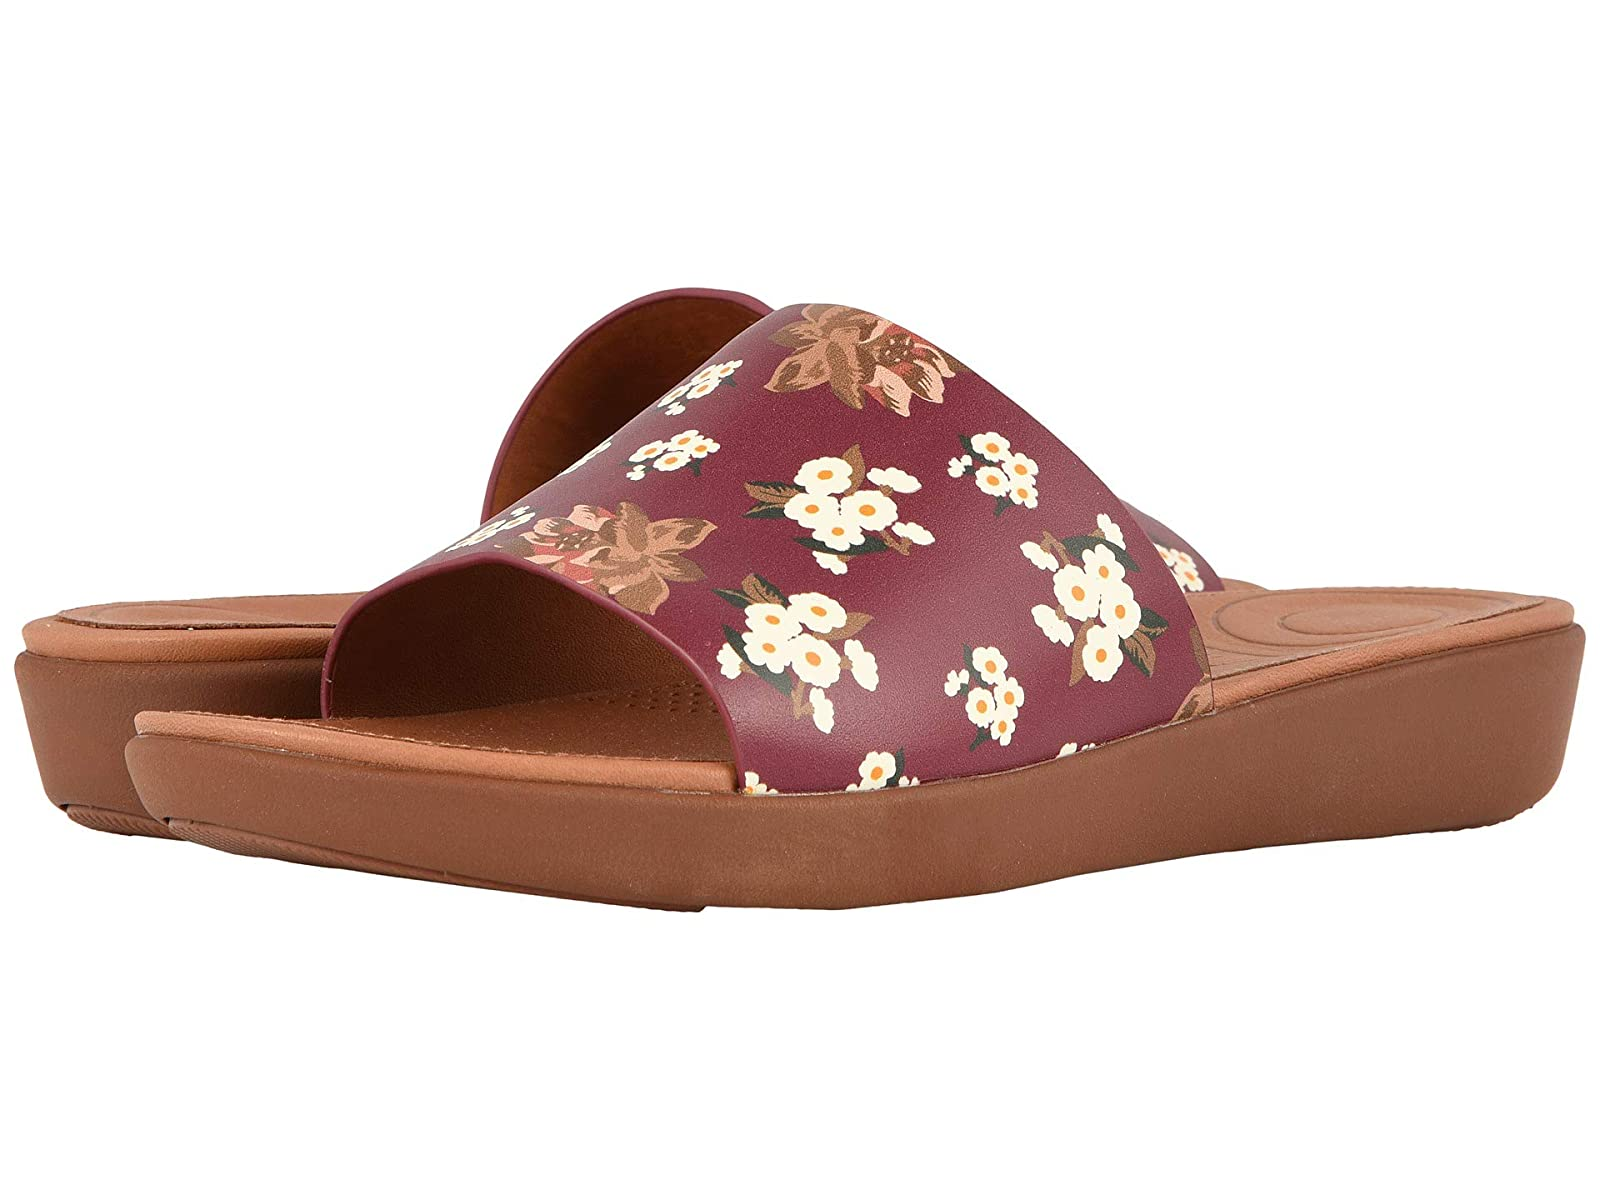 FitFlop Sola SlidesAtmospheric grades have affordable shoes